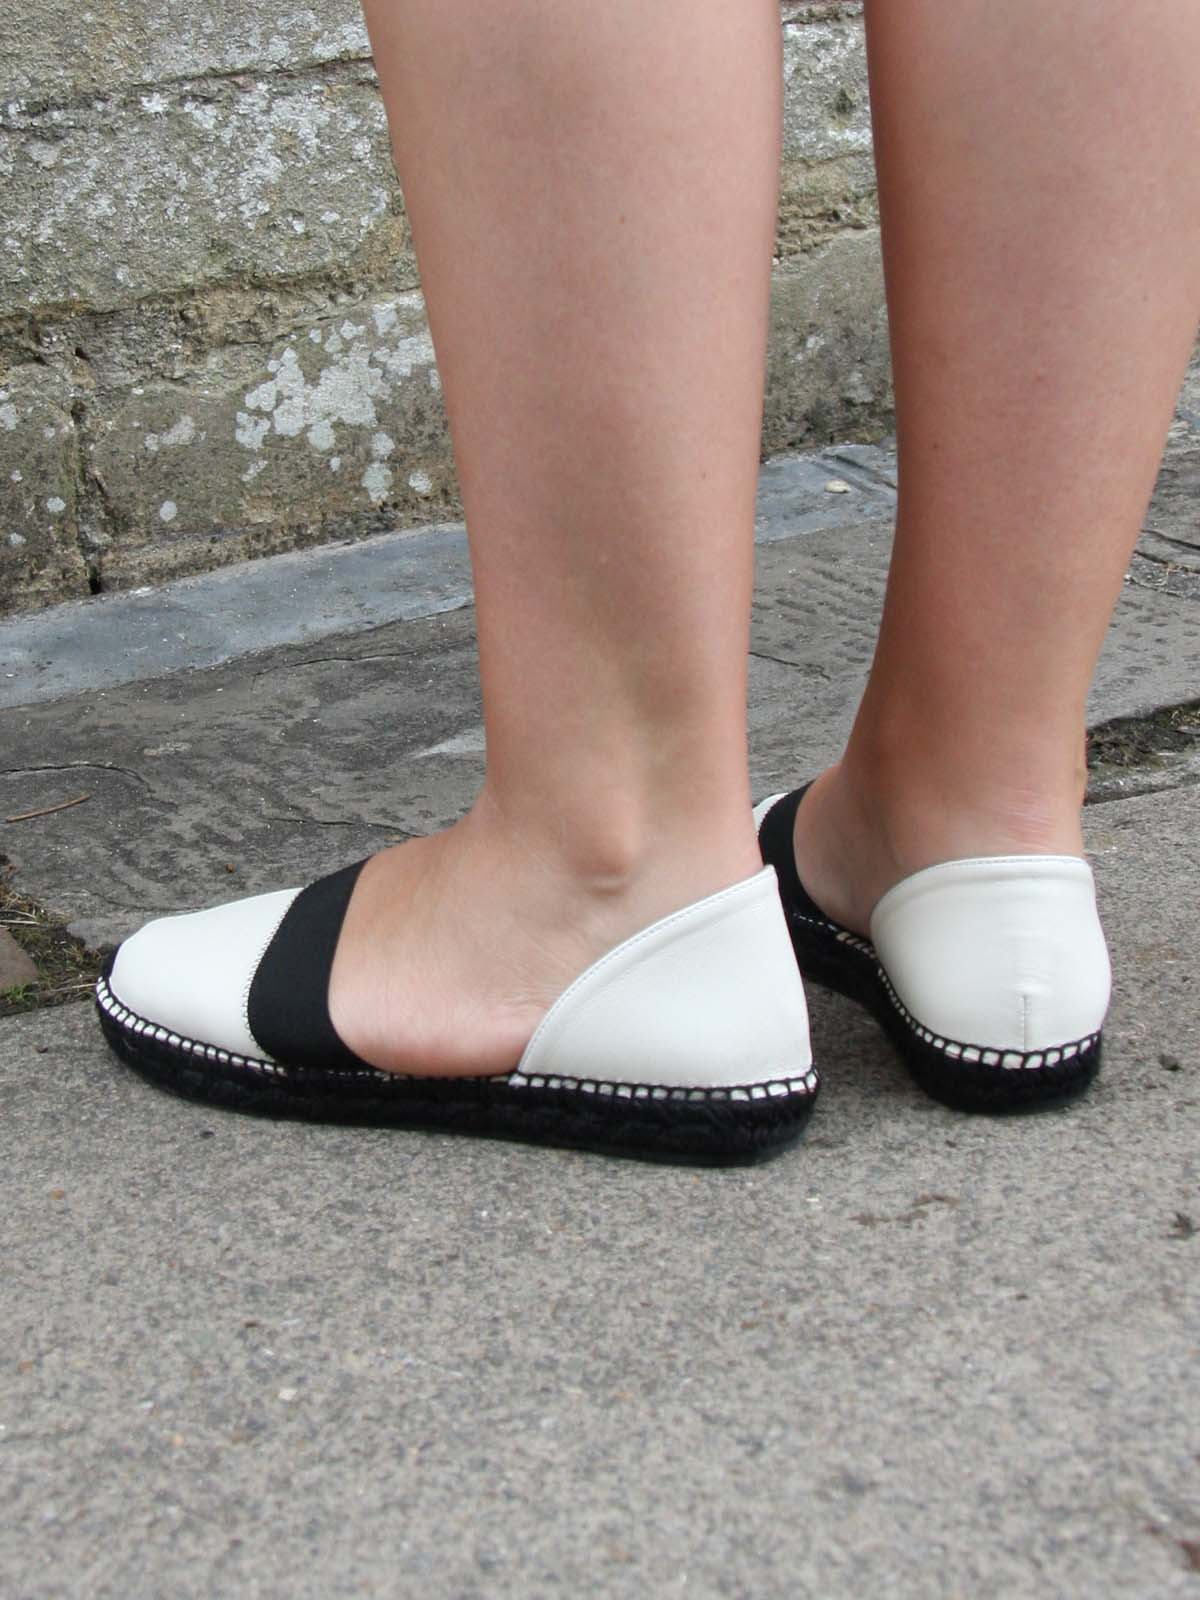 GAIMO Black and White Slip Ons, Footwear, Gaimo, Blue Women - Blue Women's Clothing